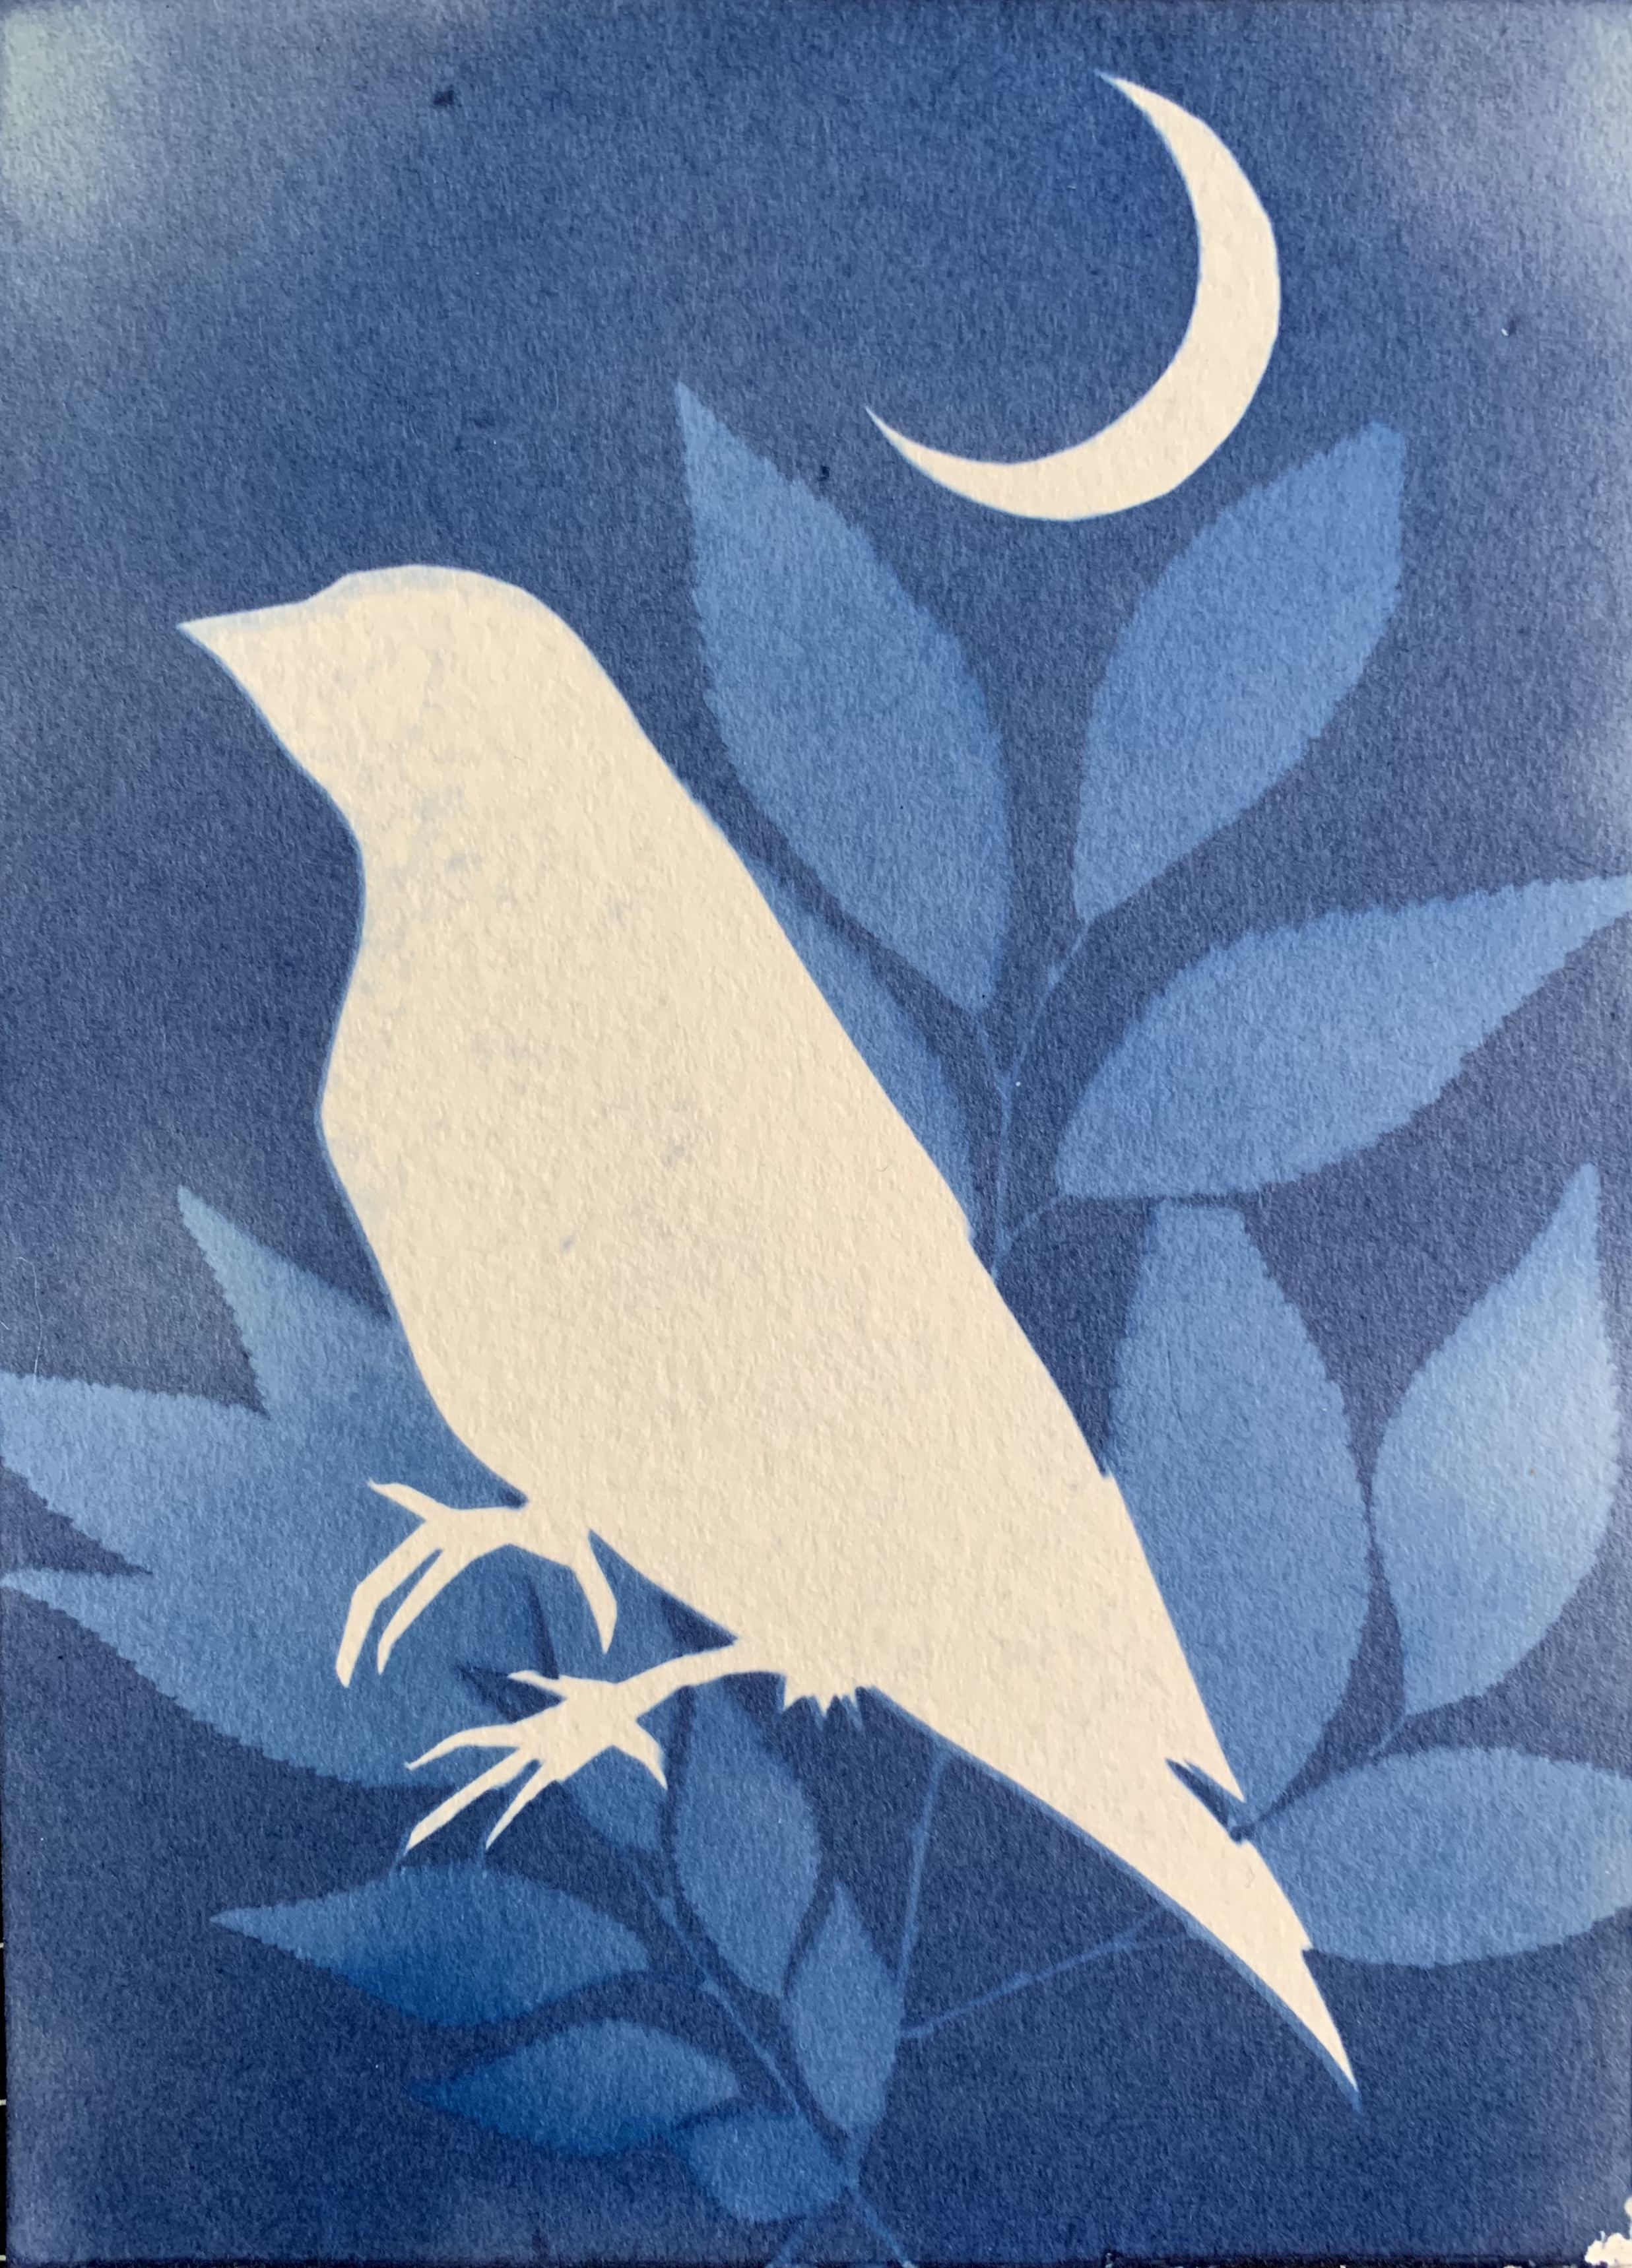 Robin at Night: Cyanotype: April 26th 2020 - large file